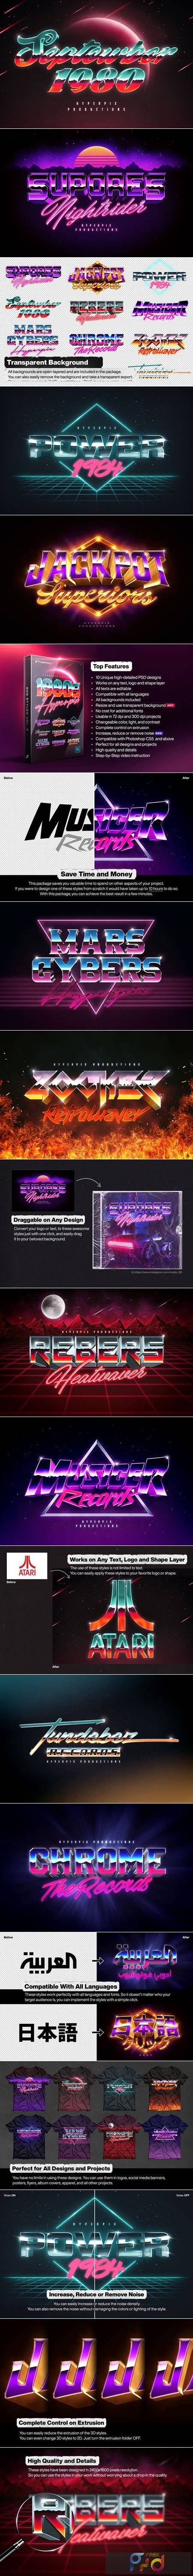 80s Text and Logo Effects Vol.5 5226111 1